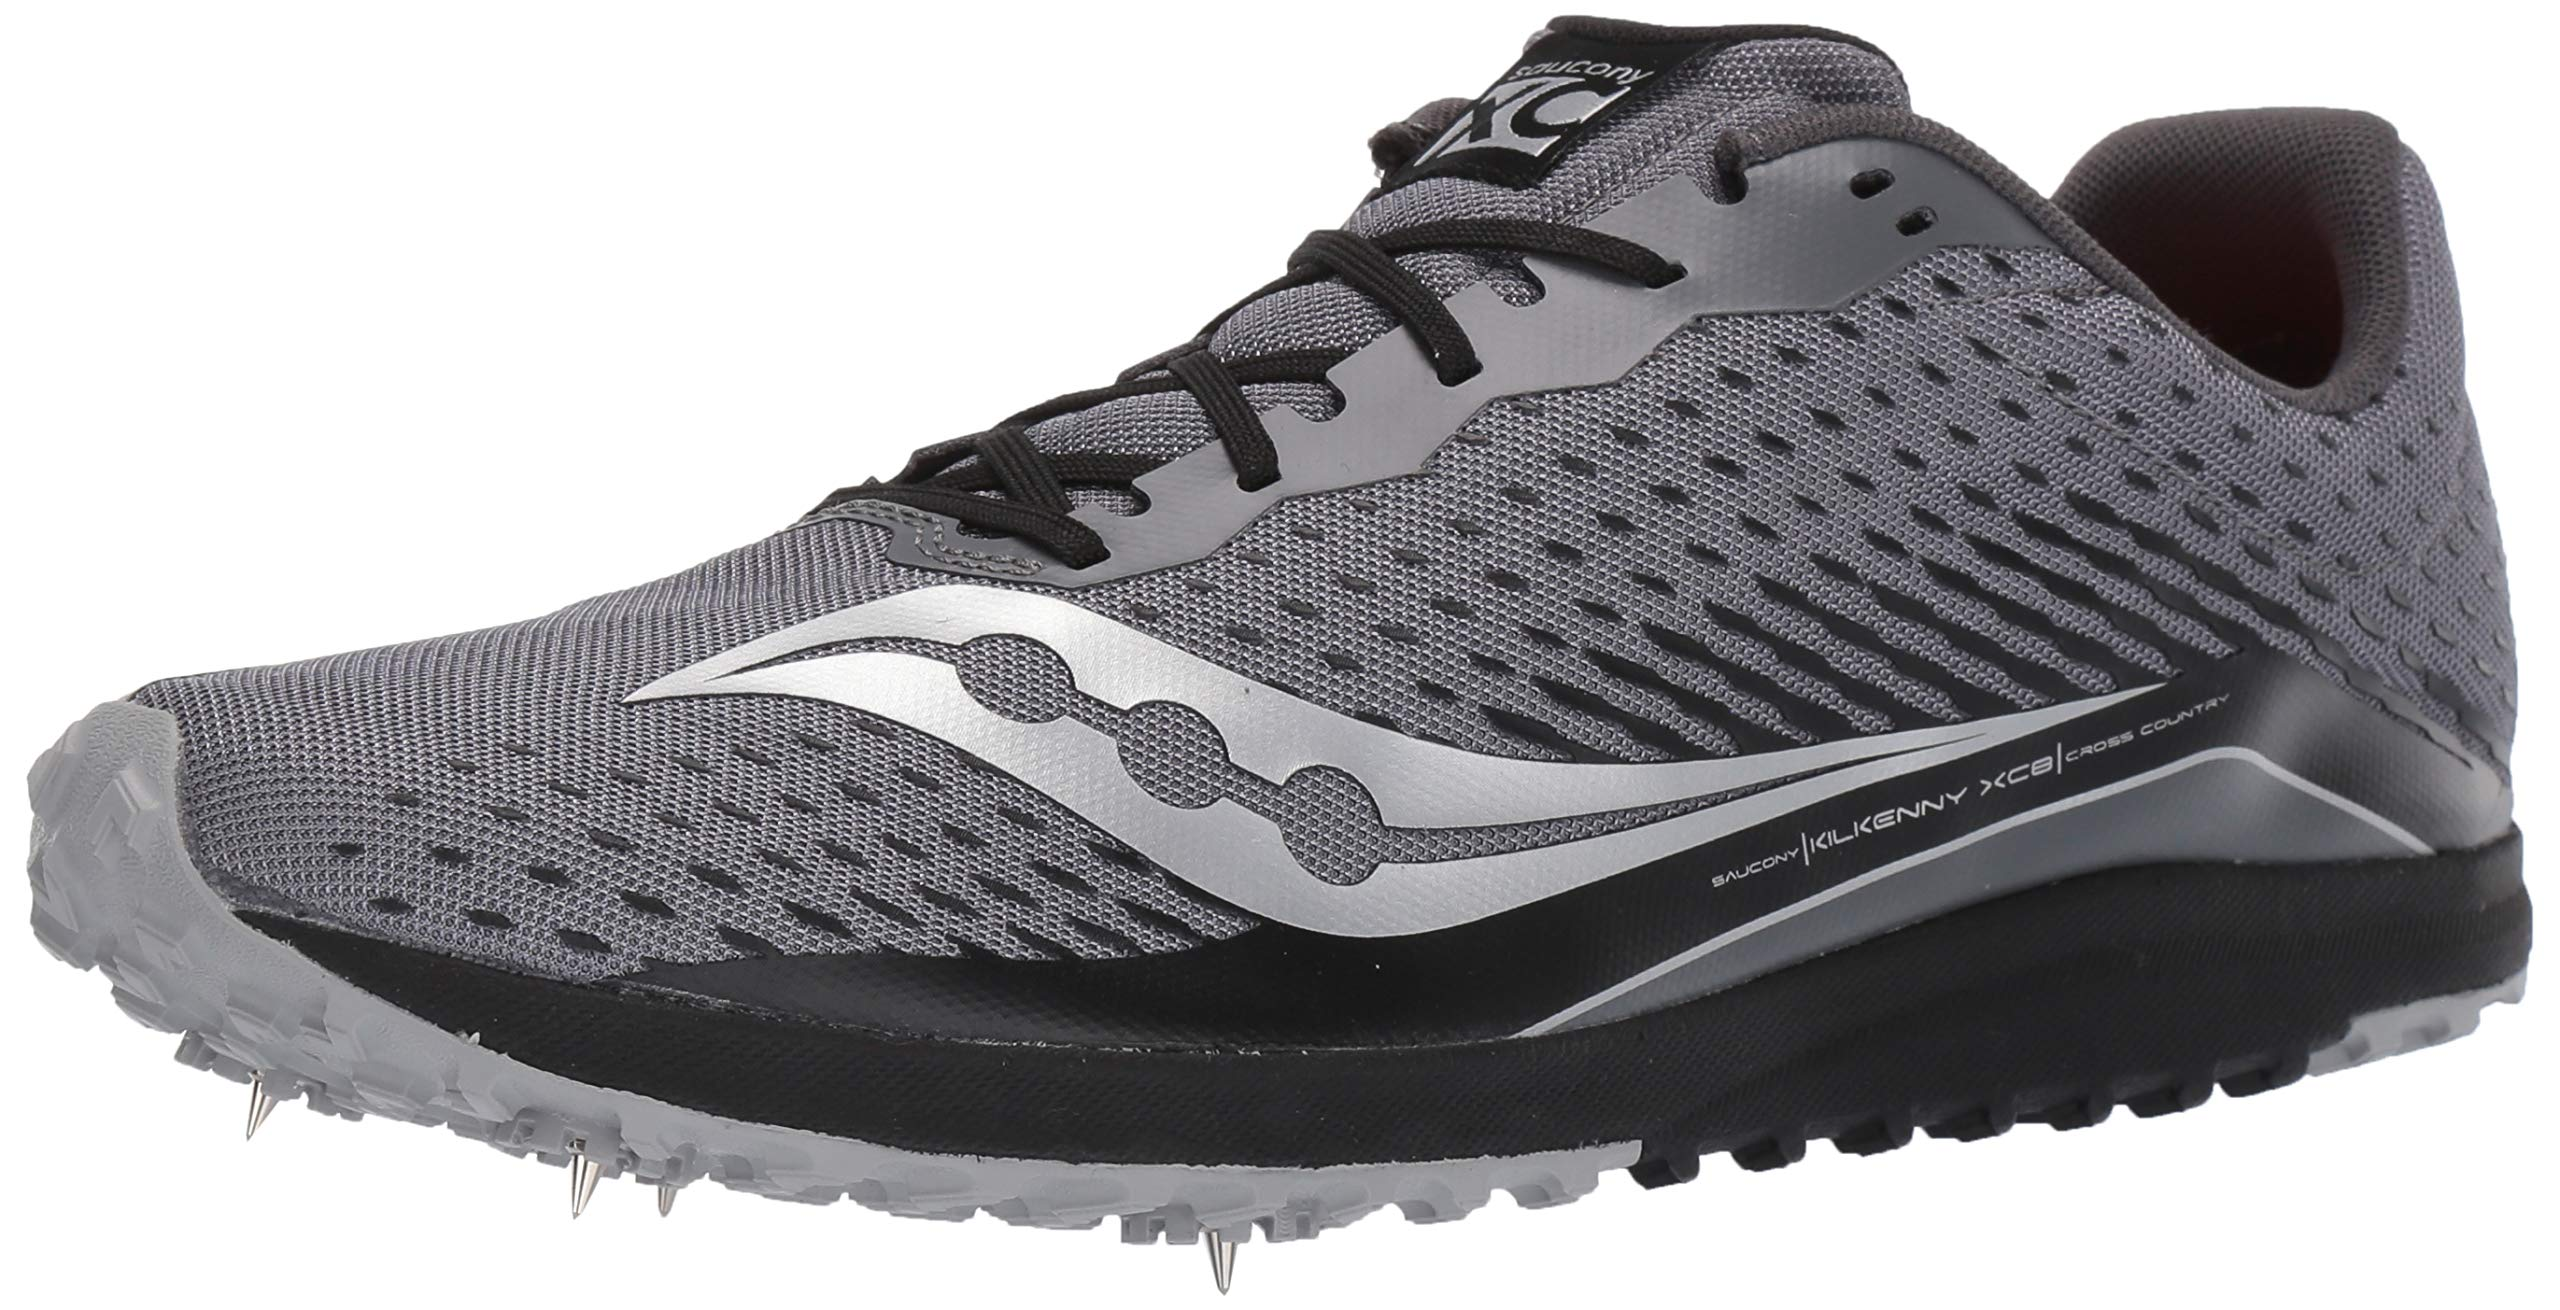 Saucony Men's Kilkenny XC 8 Track Shoe, Black/Silver, 6.5 Medium US by Saucony